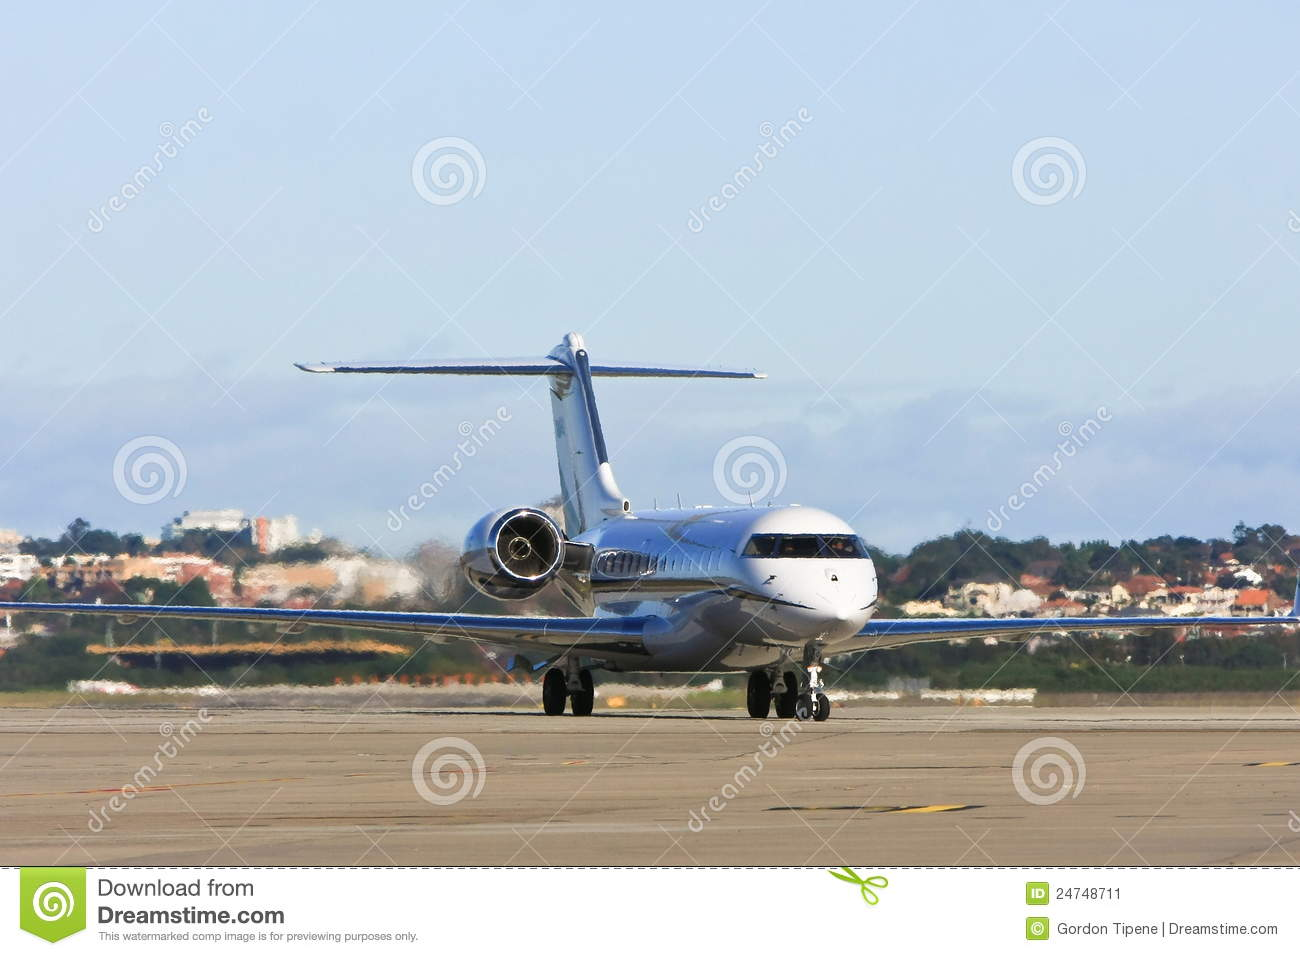 Private Jet Airliner On Tarmac Stock Image  Image 24748711